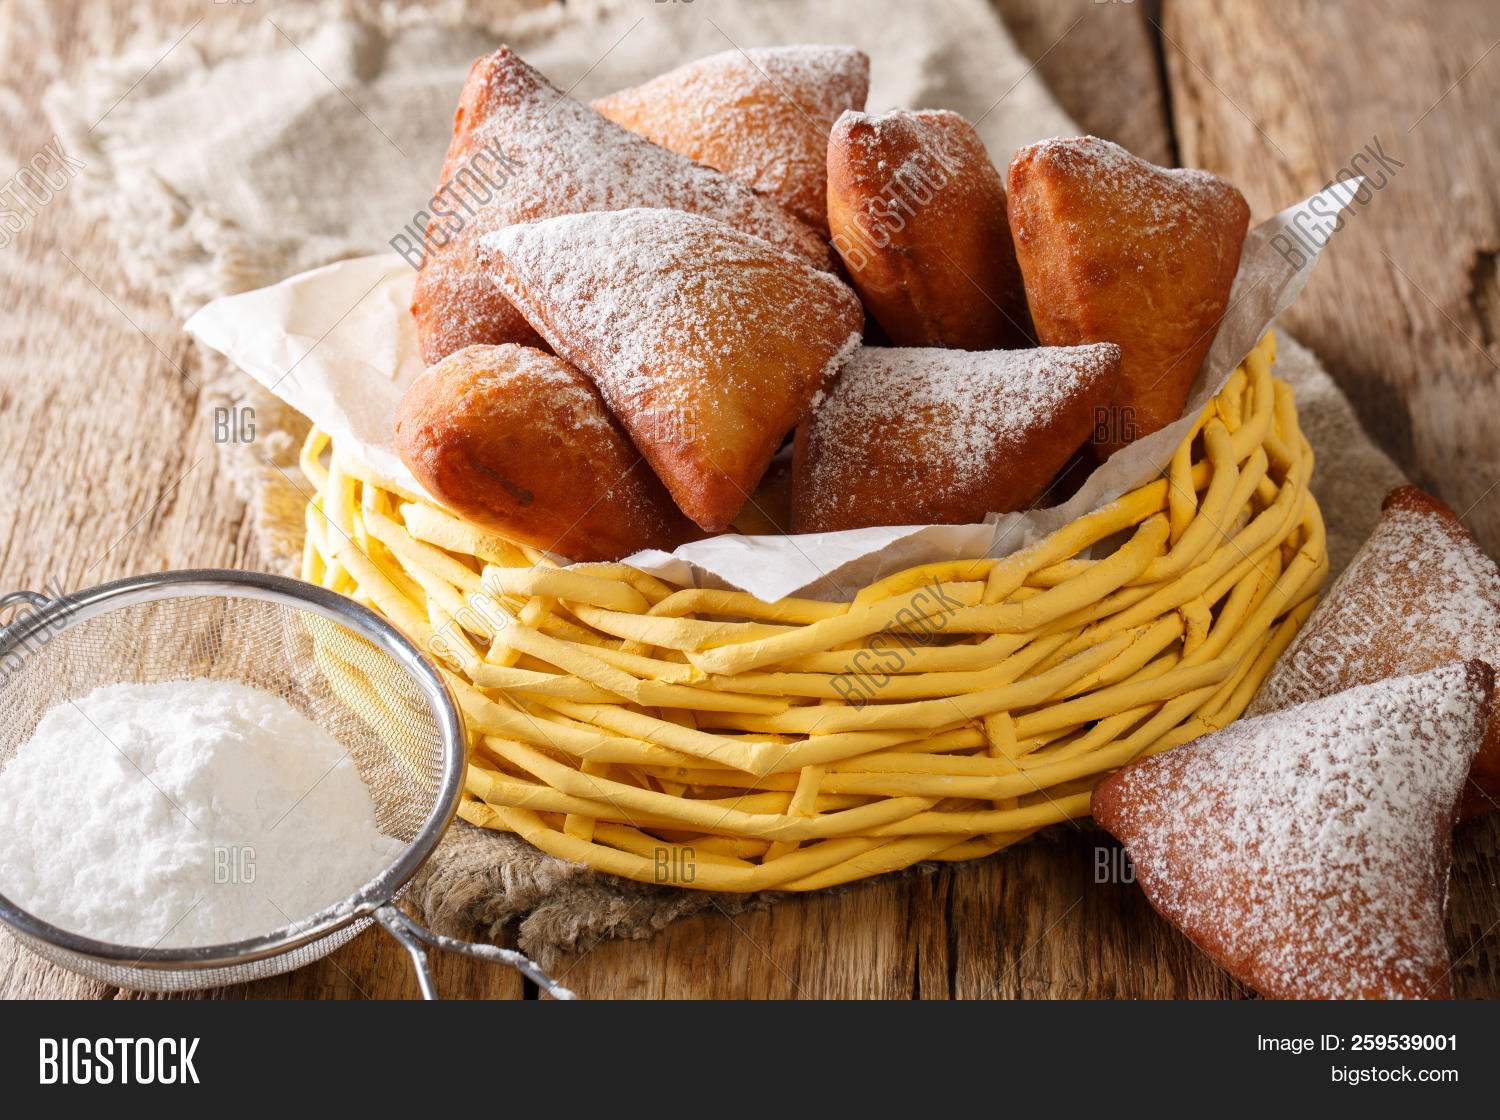 Delicious Deep Fried Image Photo Free Trial Bigstock